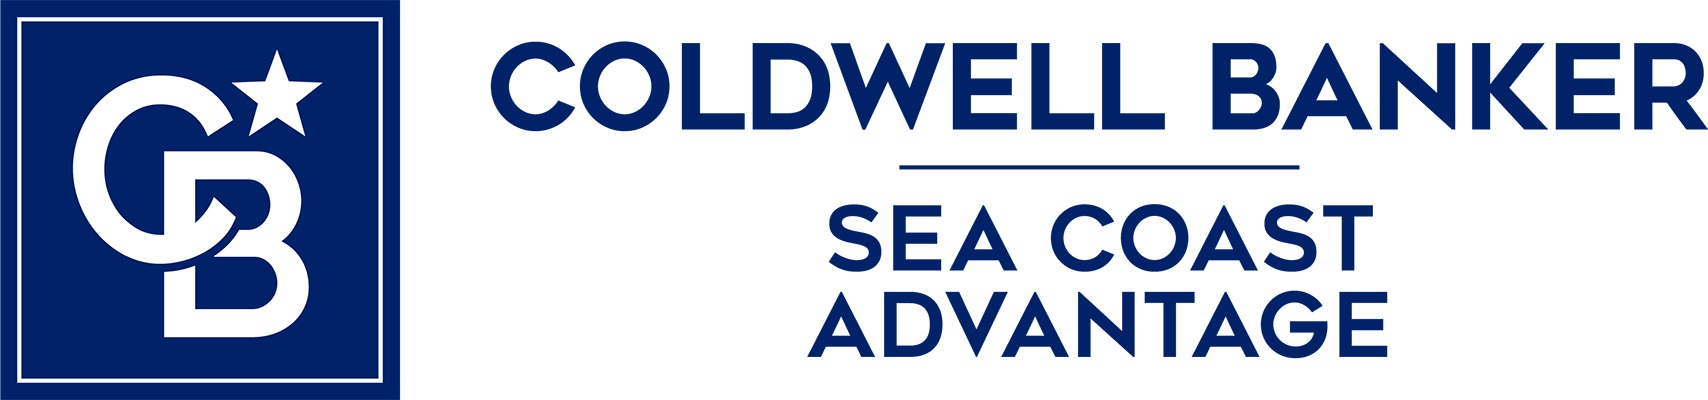 Debbie Williams - Coldwell Banker Sea Coast Advantage Realty